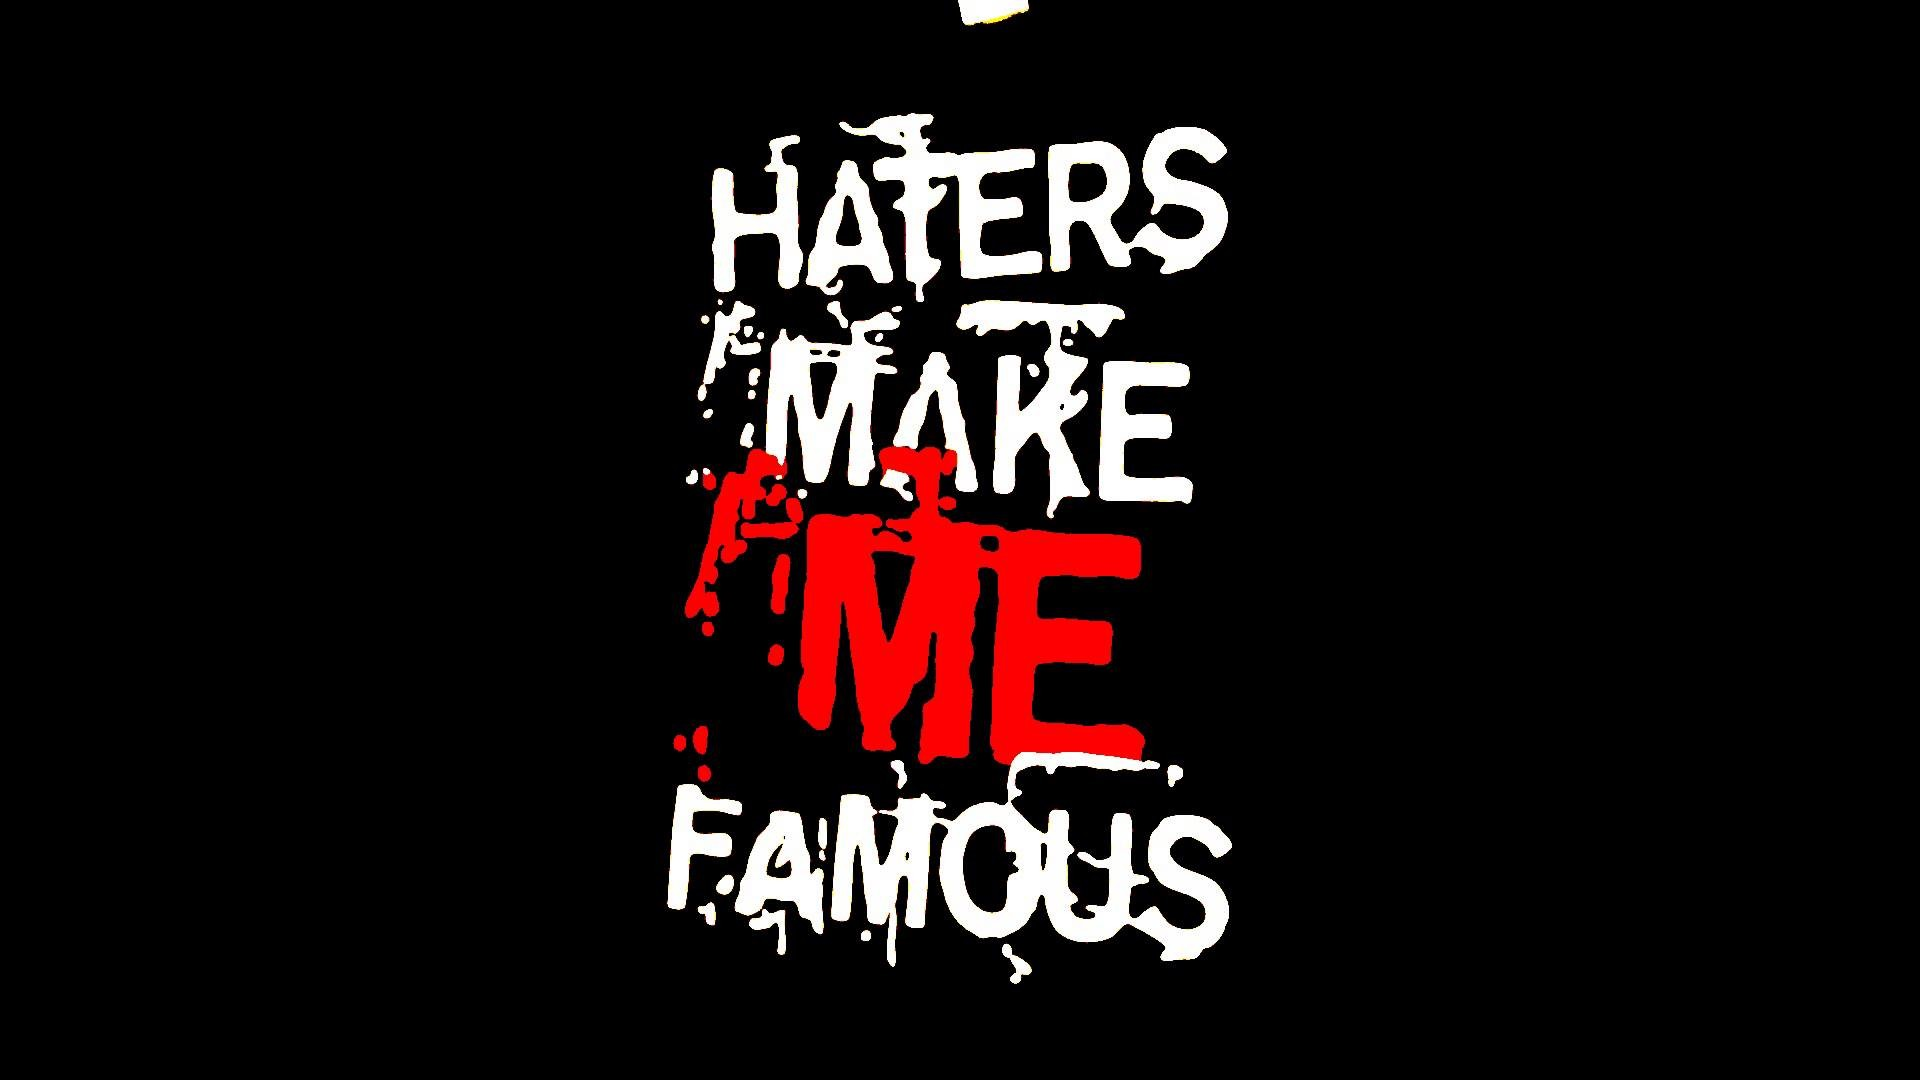 Bts Quotes Wallpaper Iphone Hd I Love Haters Wallpaper 183 ①